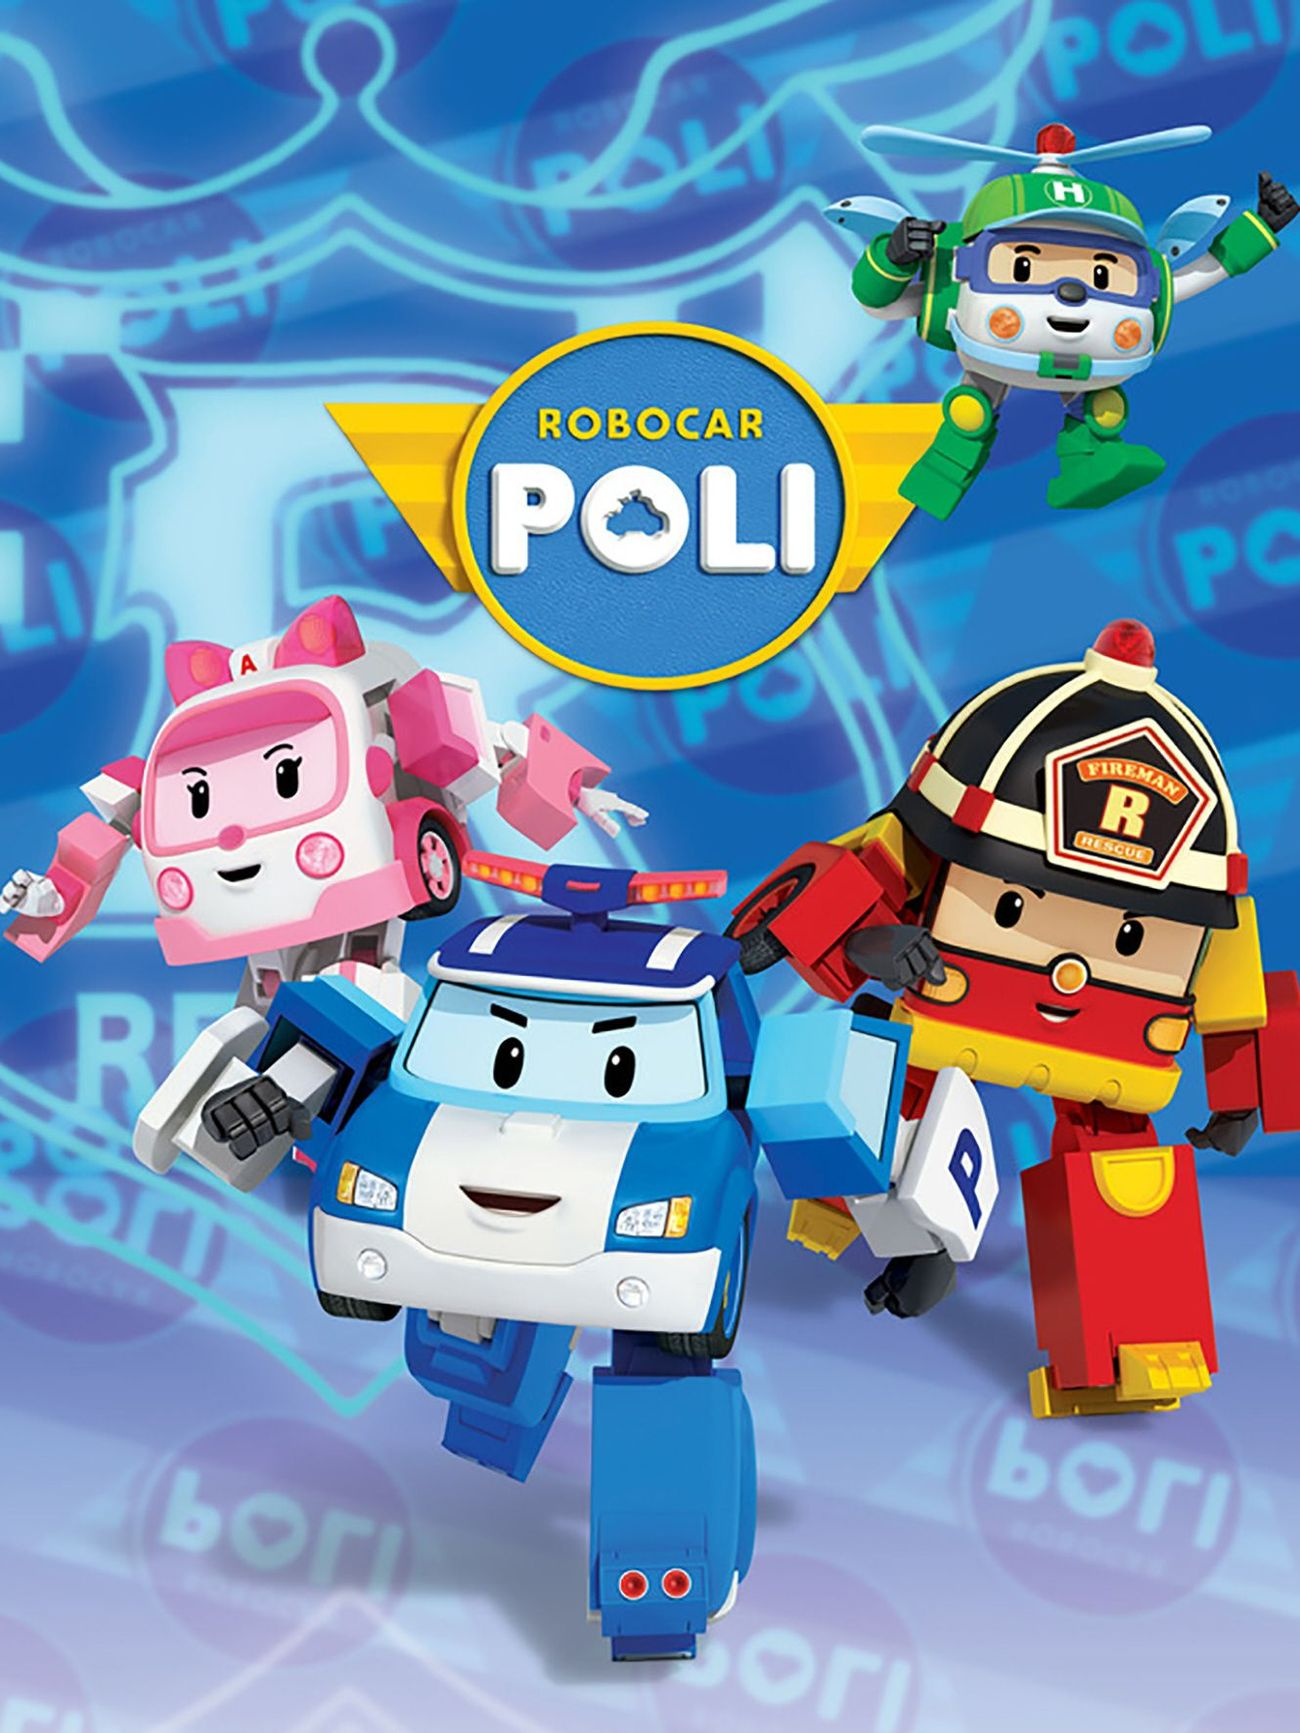 Robocar Poli Soundeffects Wiki Fandom Powered By Wikia